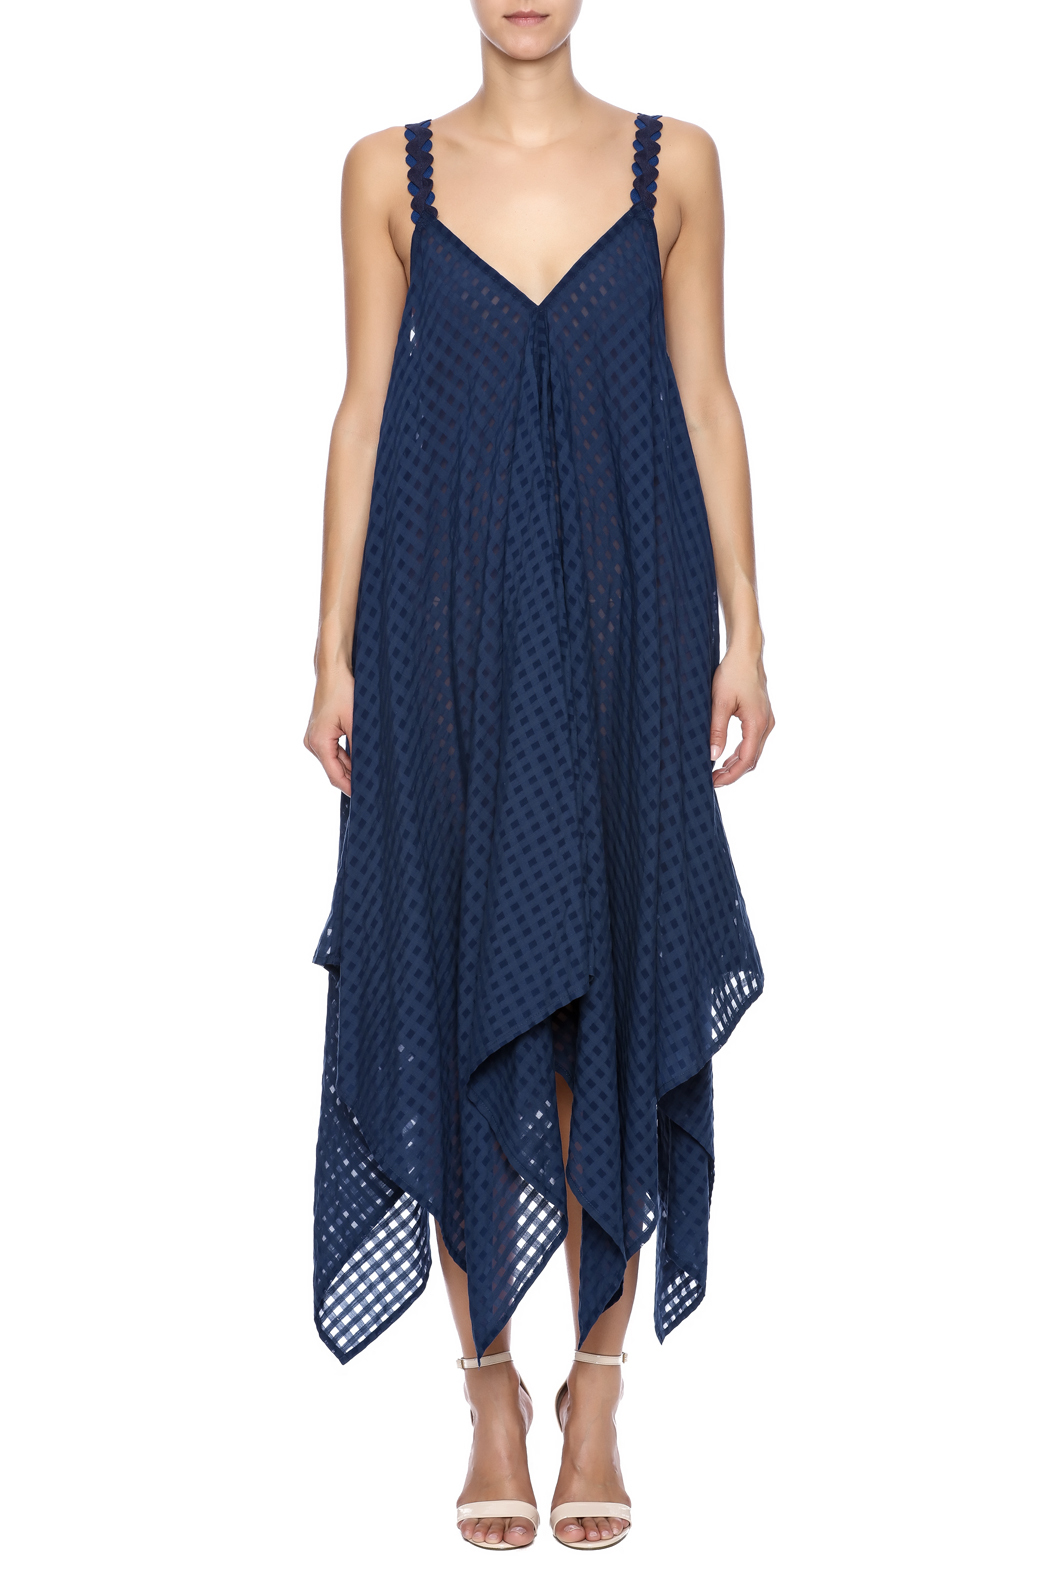 Royal Jelly Harlem Indigo Mimi Dress - Front Cropped Image